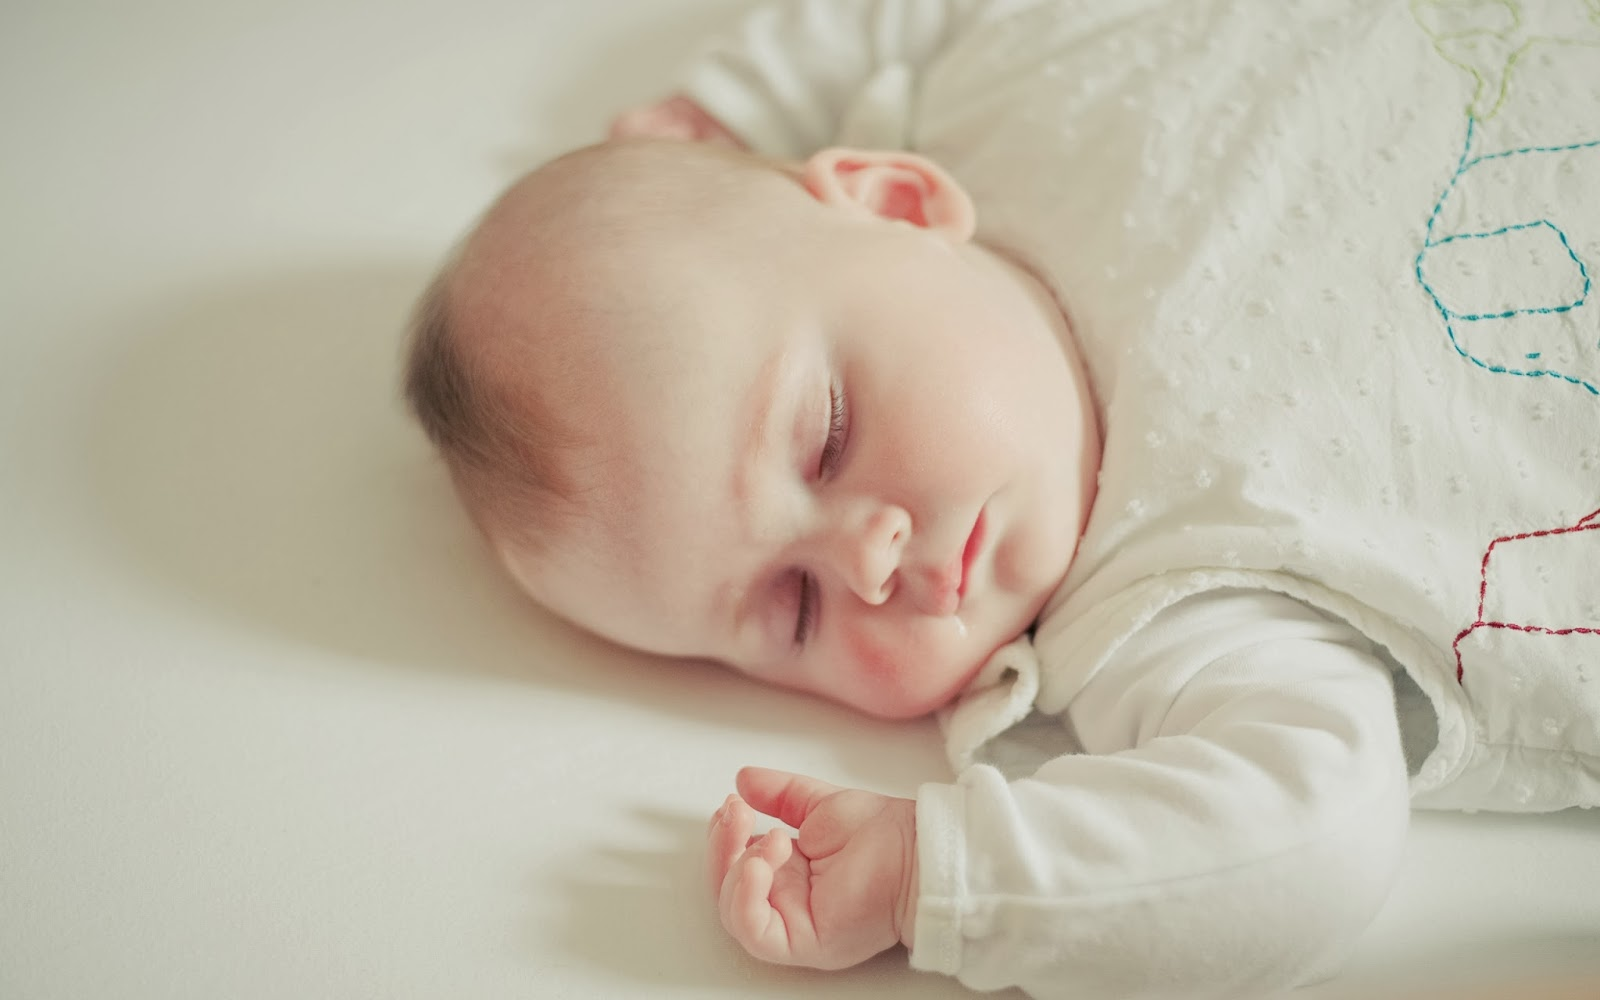 Cute Little Babies Hq 2 Wallpapers: Beautiful Wallpapers Collection 2014